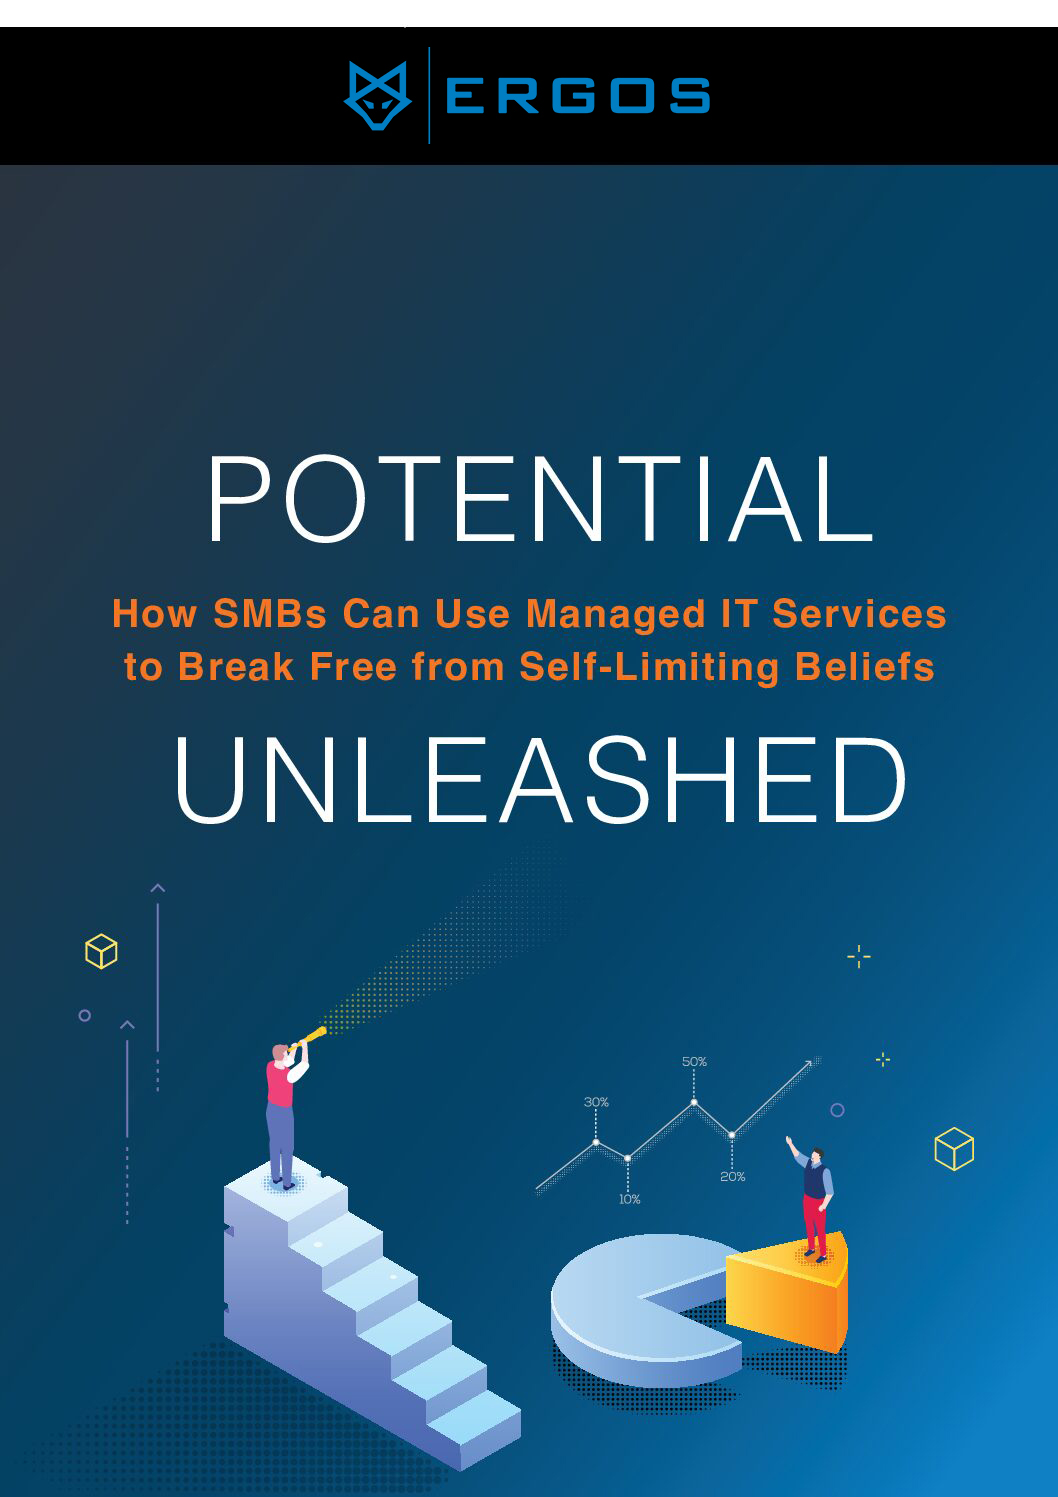 """Book cover for """"Potential Unleashed: How SMBs Can Use Managed IT Services to Break Free from Self-Limiting Beliefs"""""""